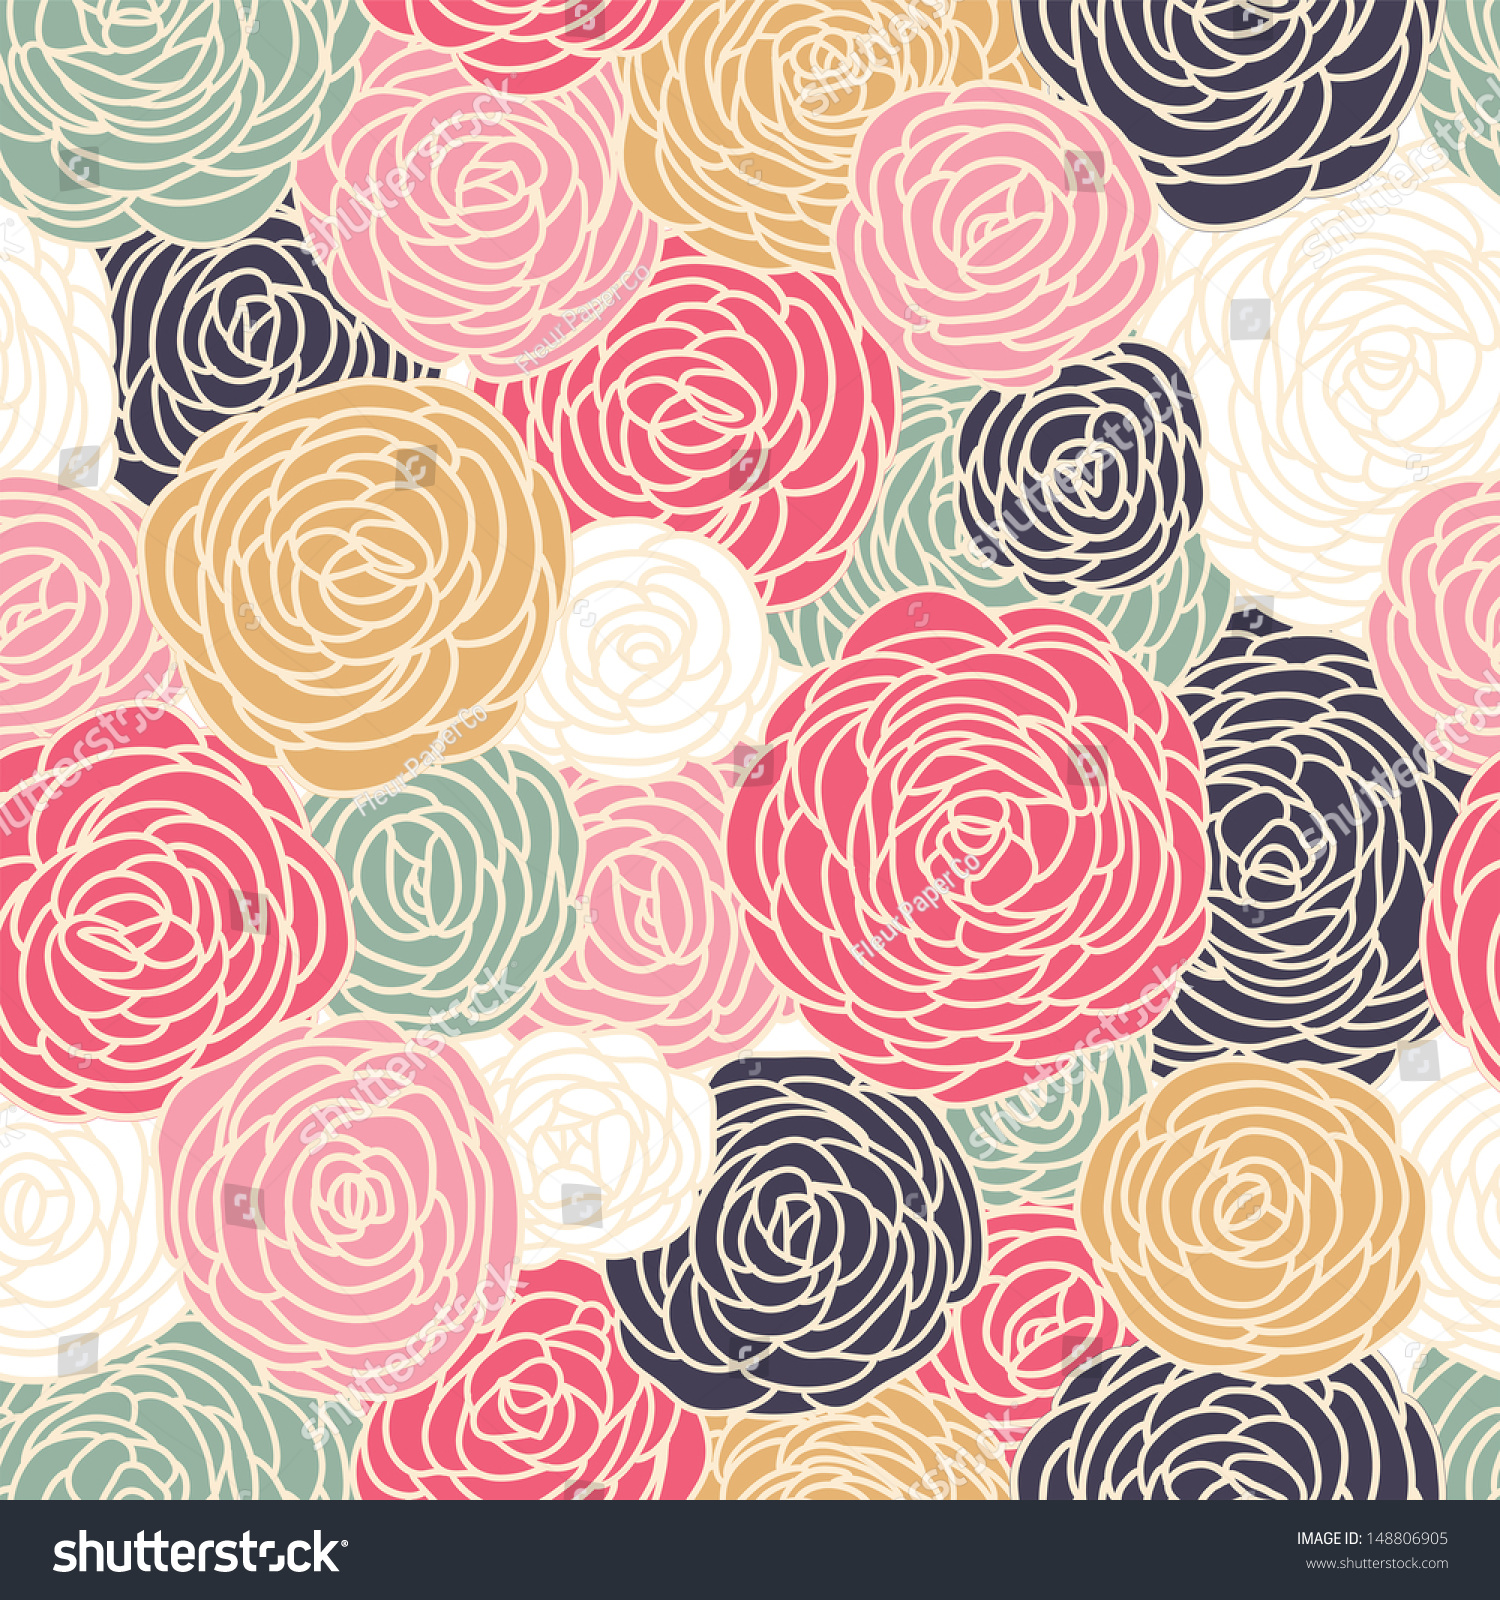 Vector Vintage Inspired Seamless Floral Pattern Stock ...